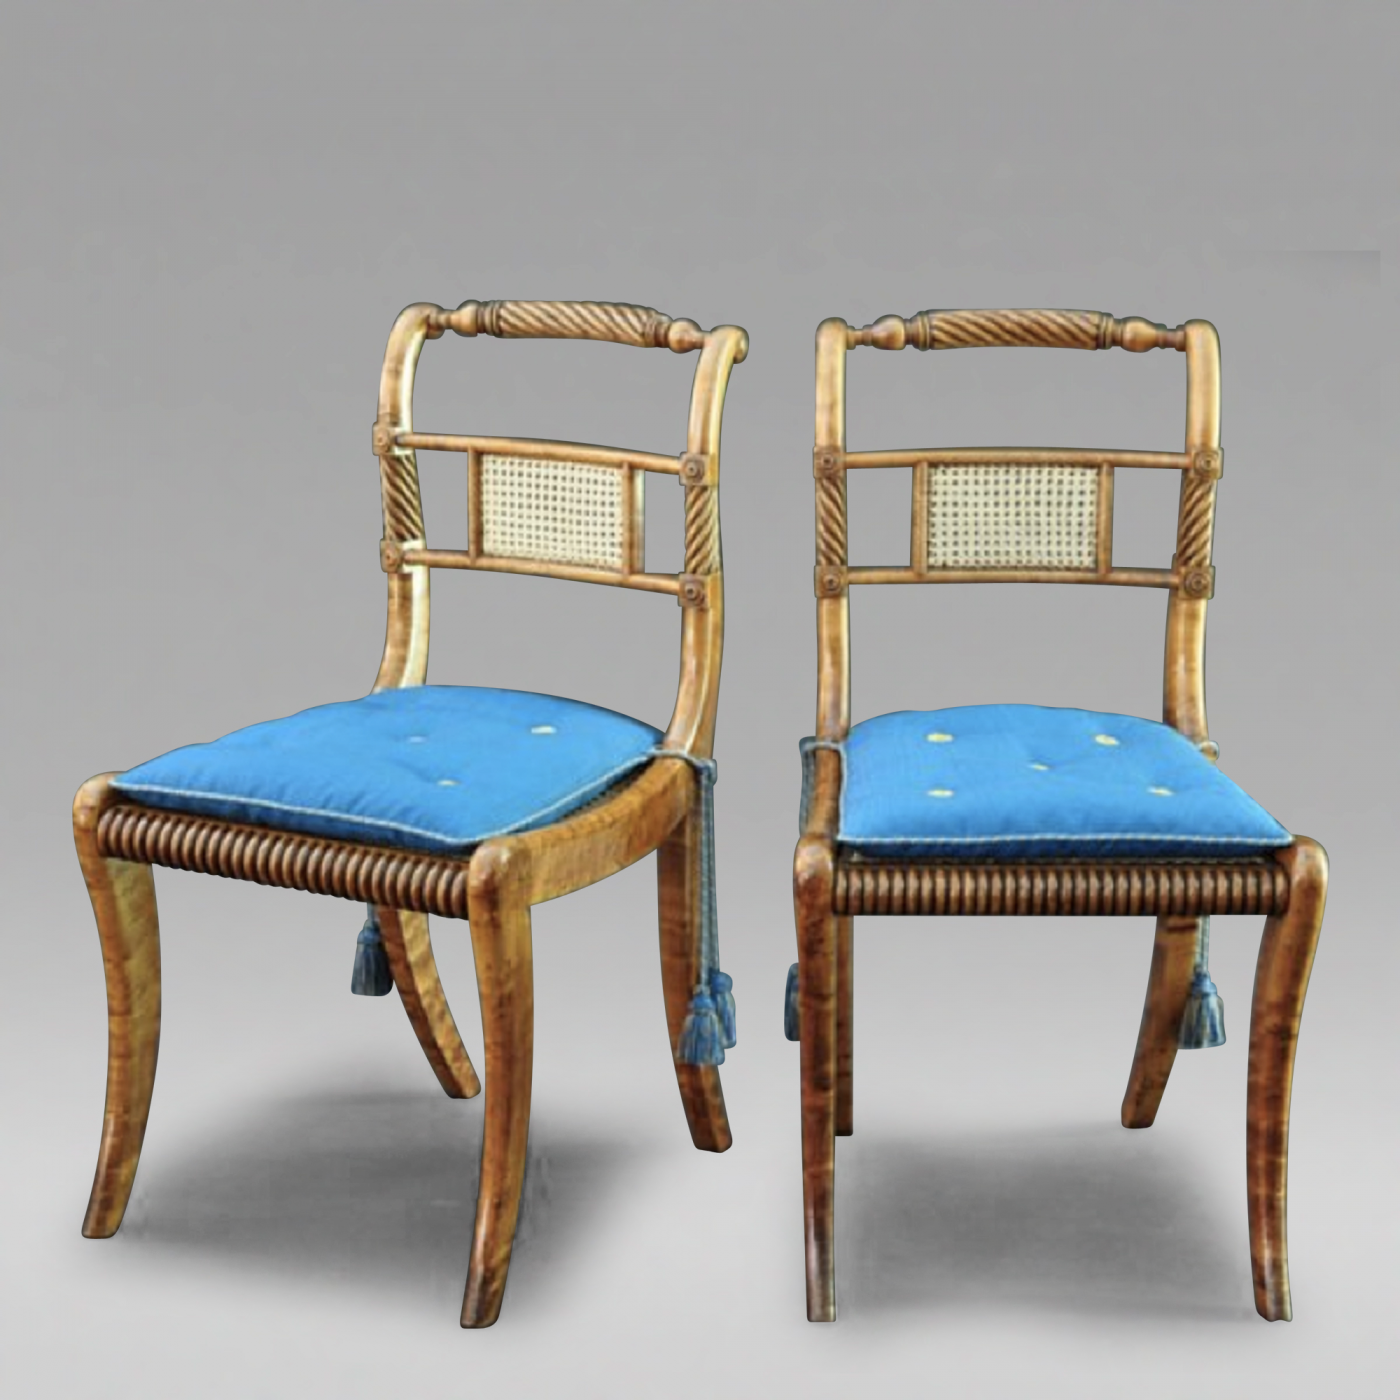 a pair of classical chairs c 1815